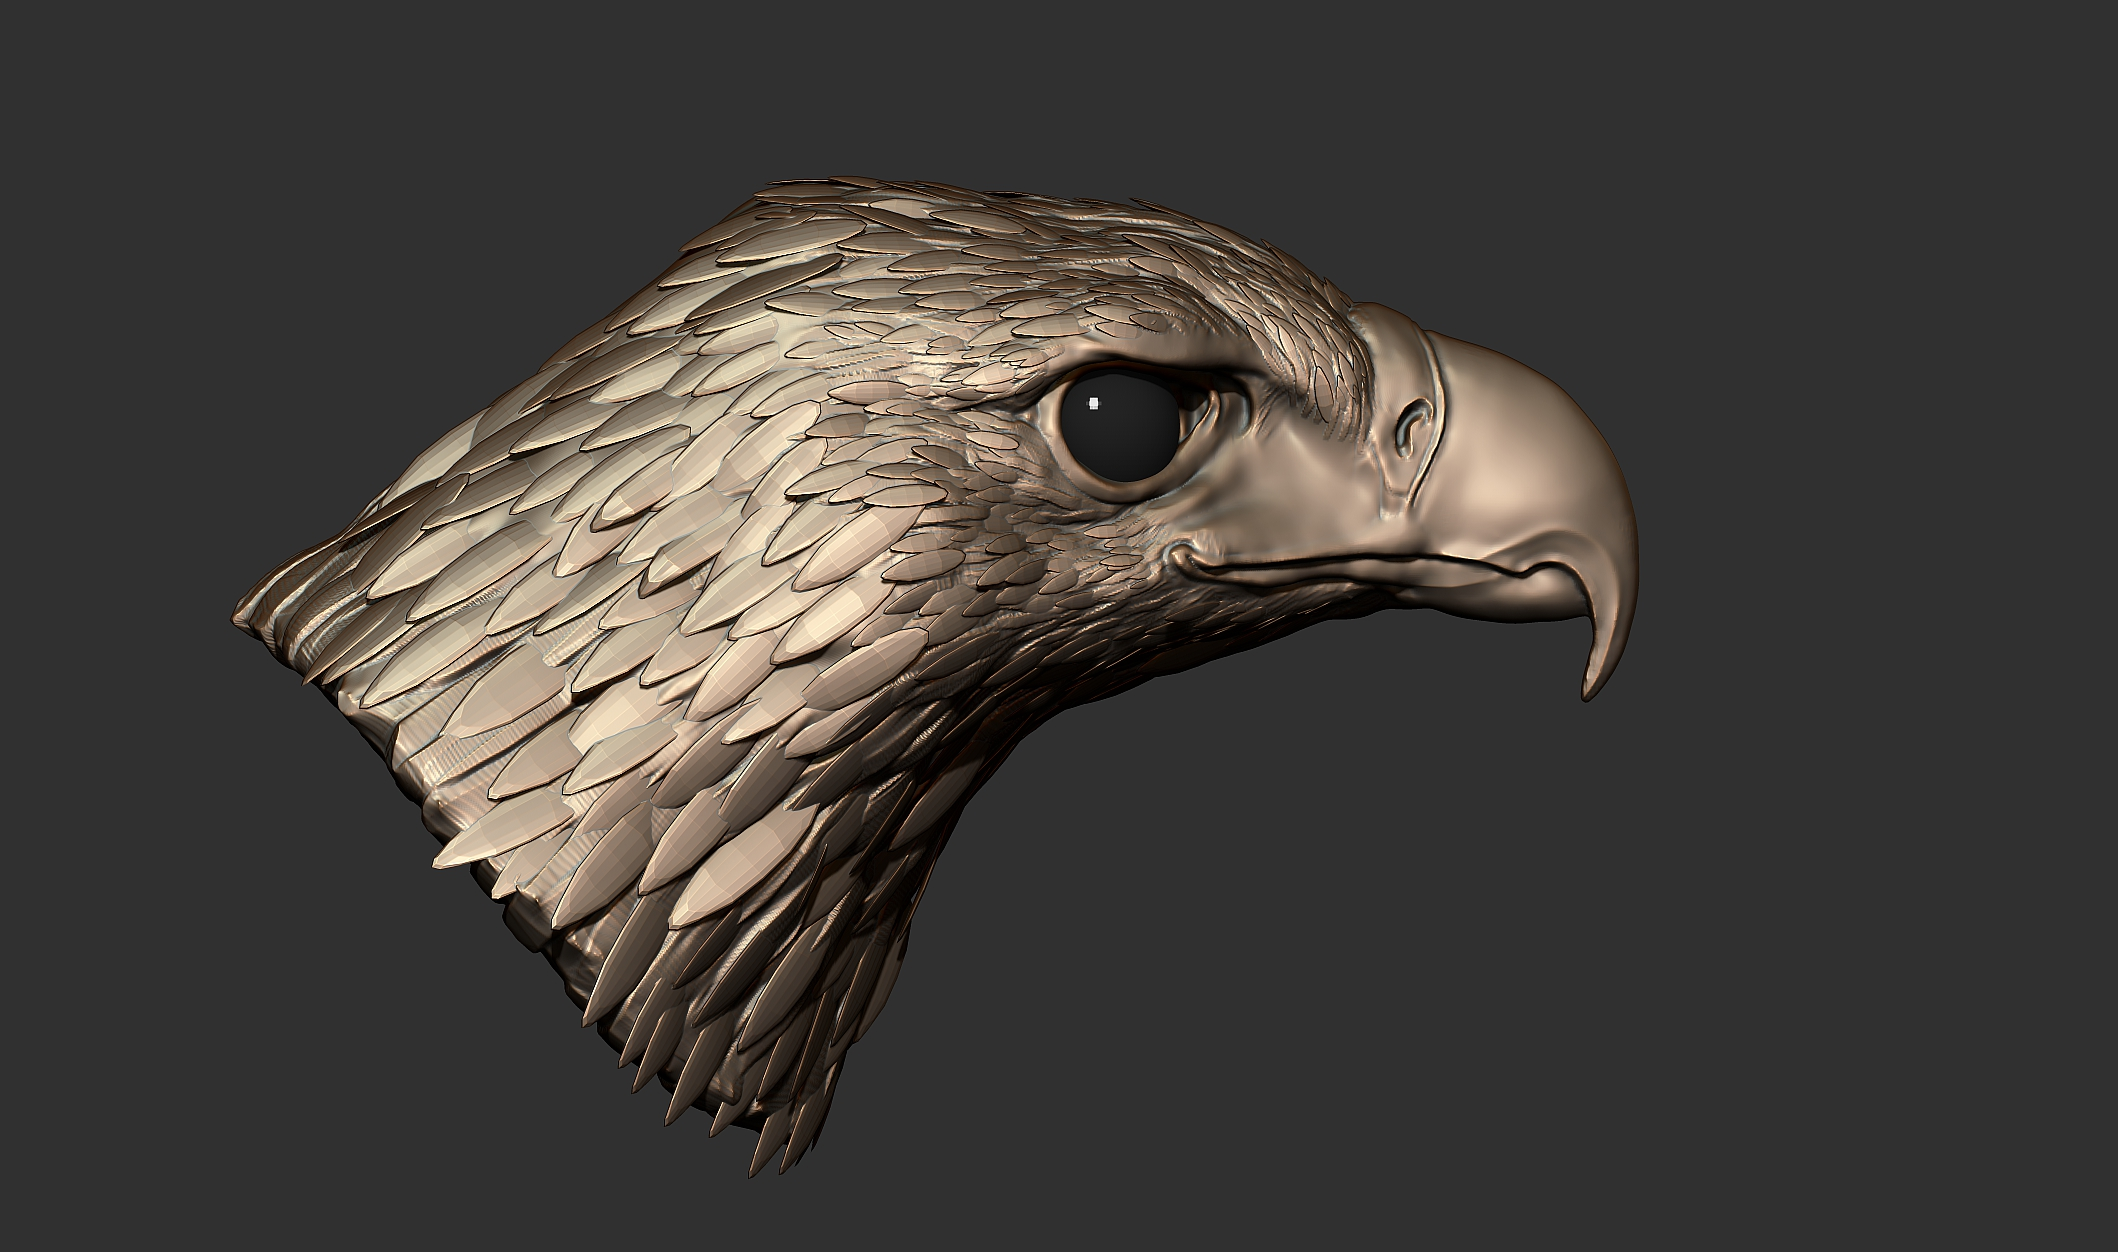 eagle_sculpt_02.jpg